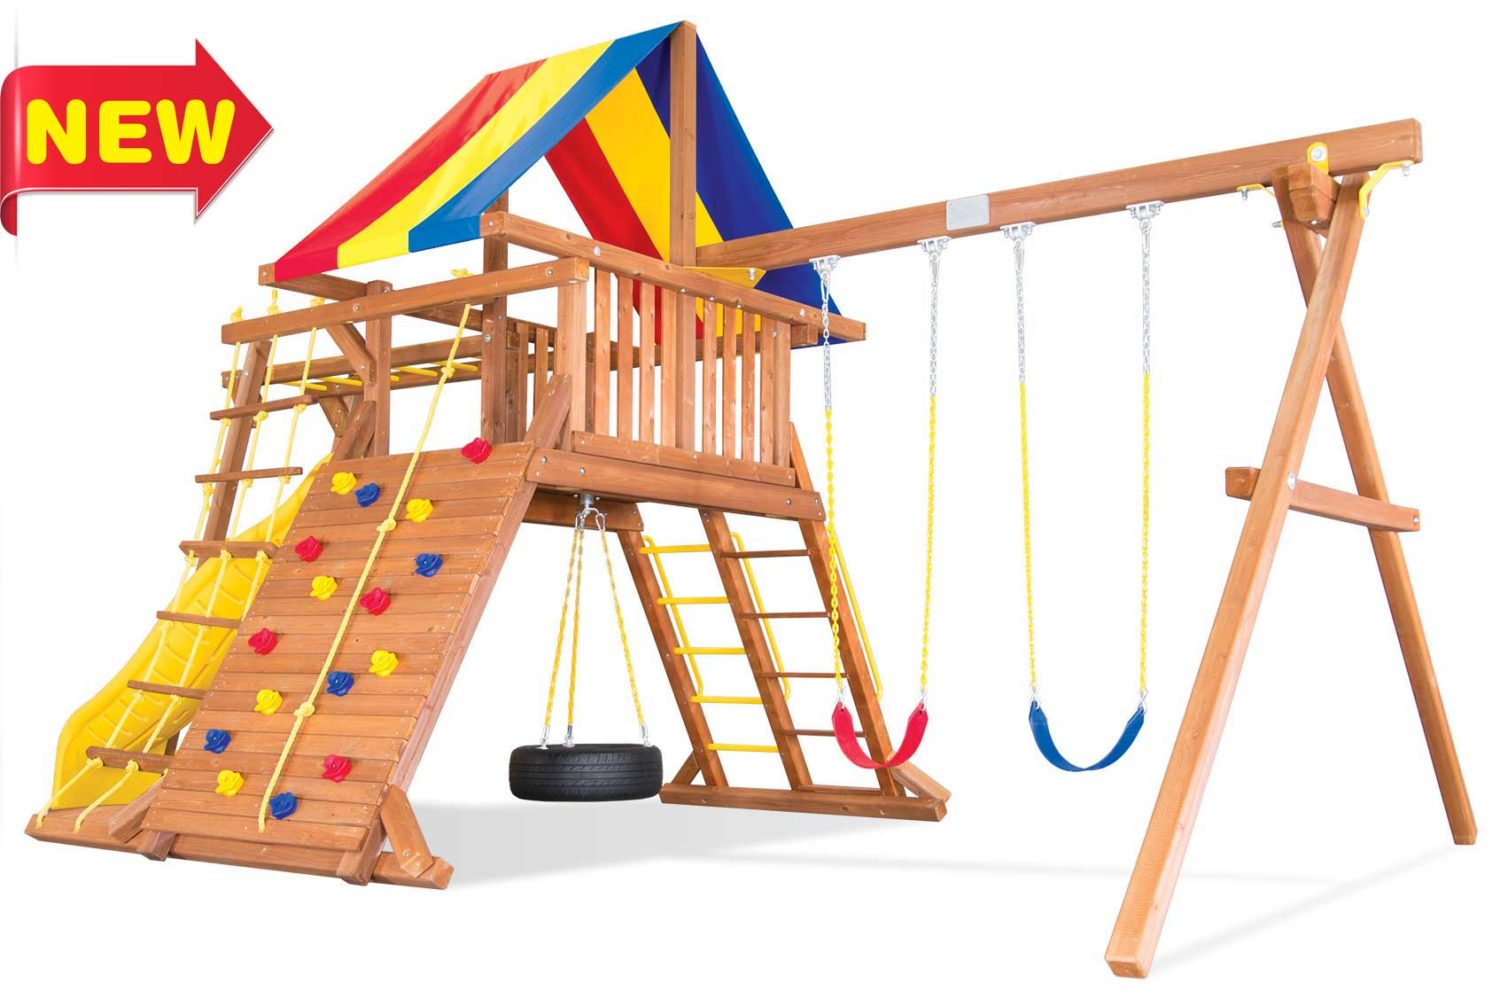 Circus Turbo Castle Pkg III with Monkey Bars Wooden Swing Set